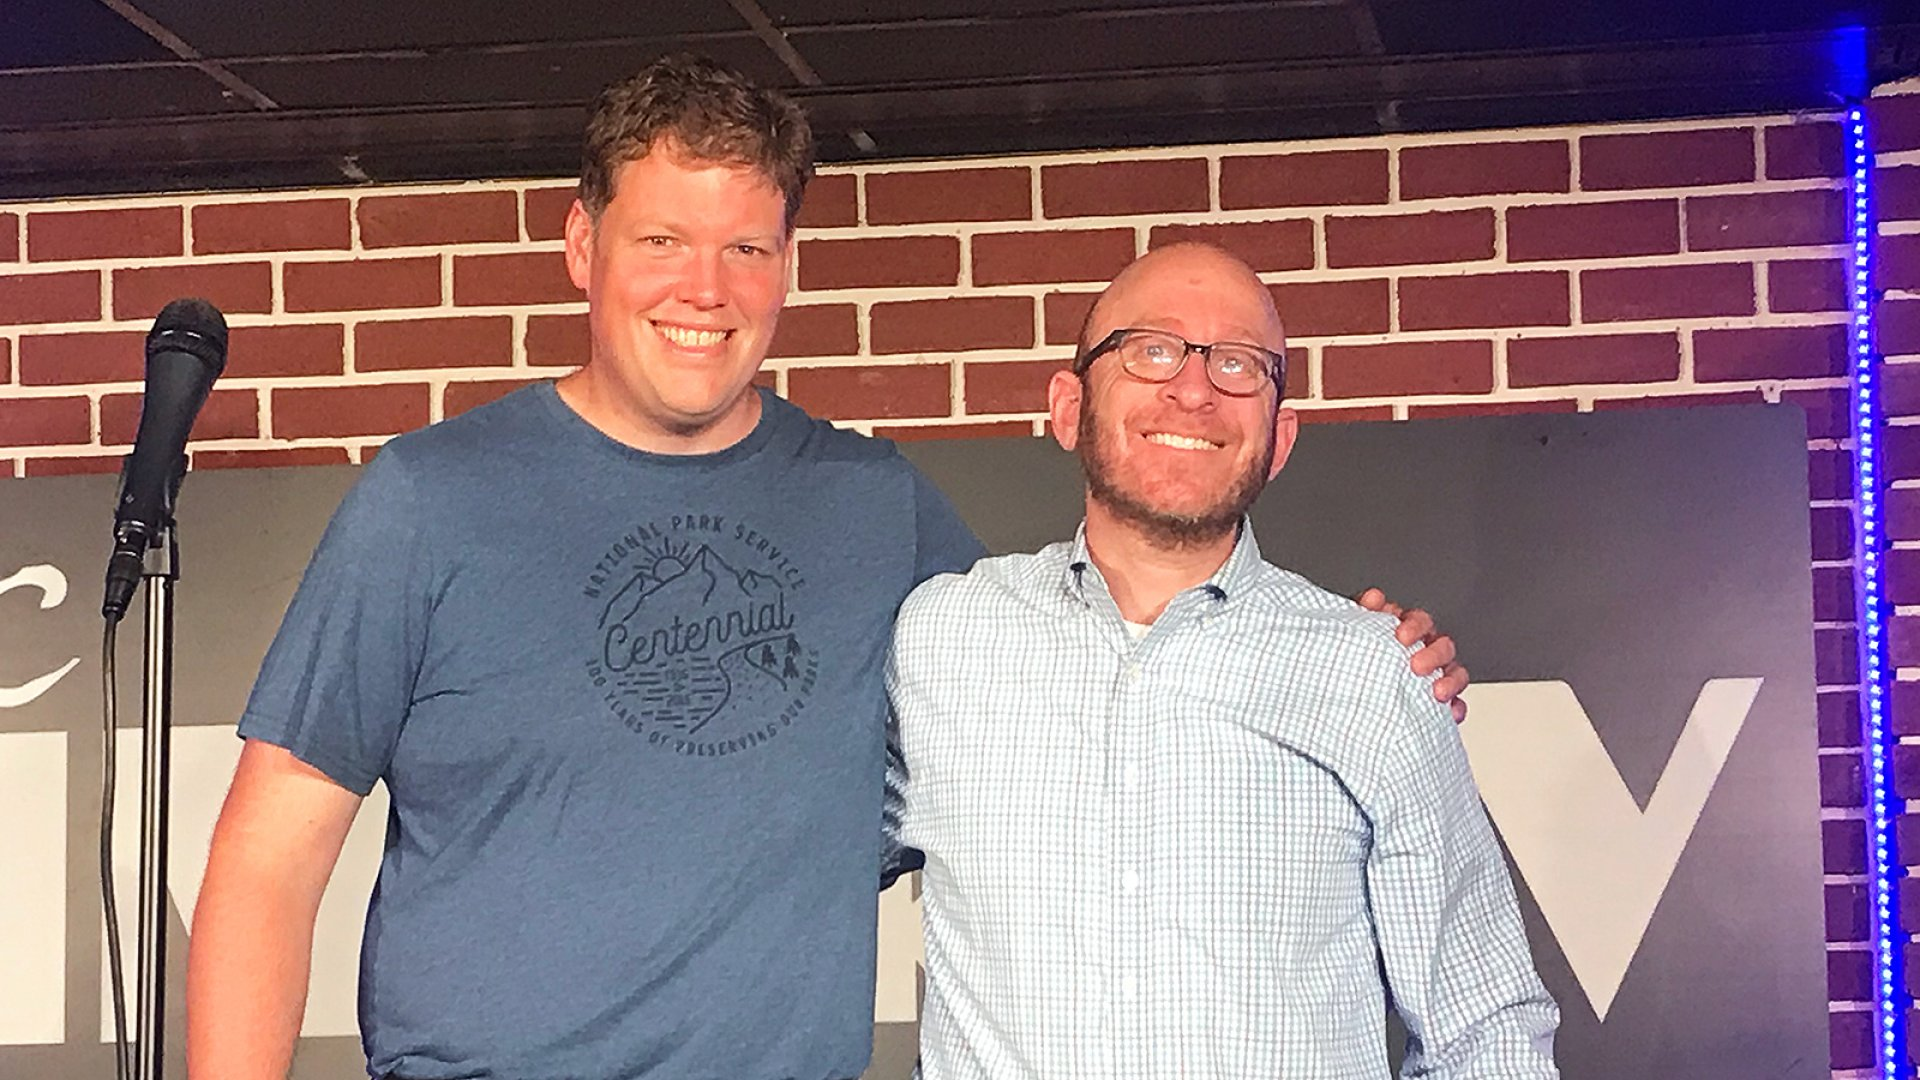 Kirk Drake and Joe Fuld successfully completed the Entrepreneur CEO Stand-Up Challenge at the DC Improv on August 13, 2018.